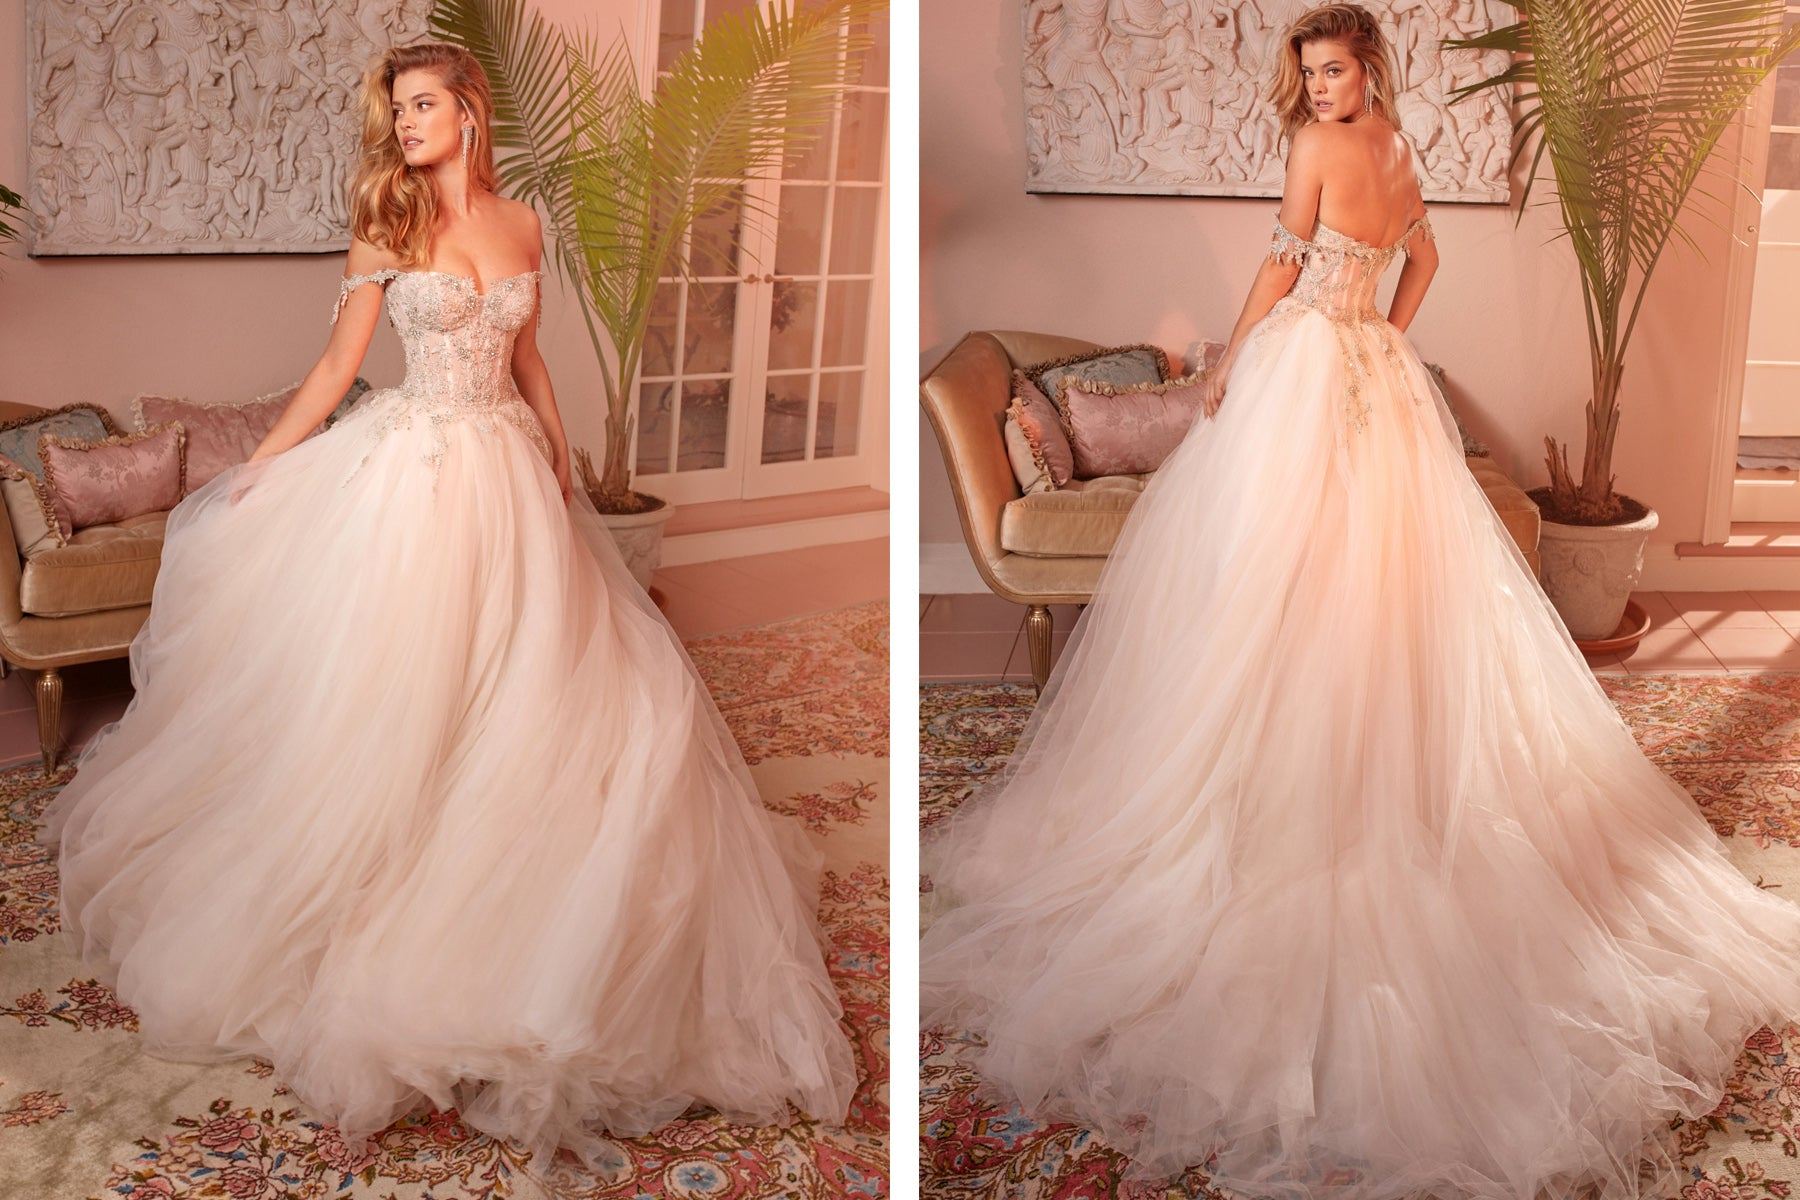 Eternal_Bridal_Wedding_Dress_Galia_Lahav_Haute_Couture_Queen_of_Hearts_Mia